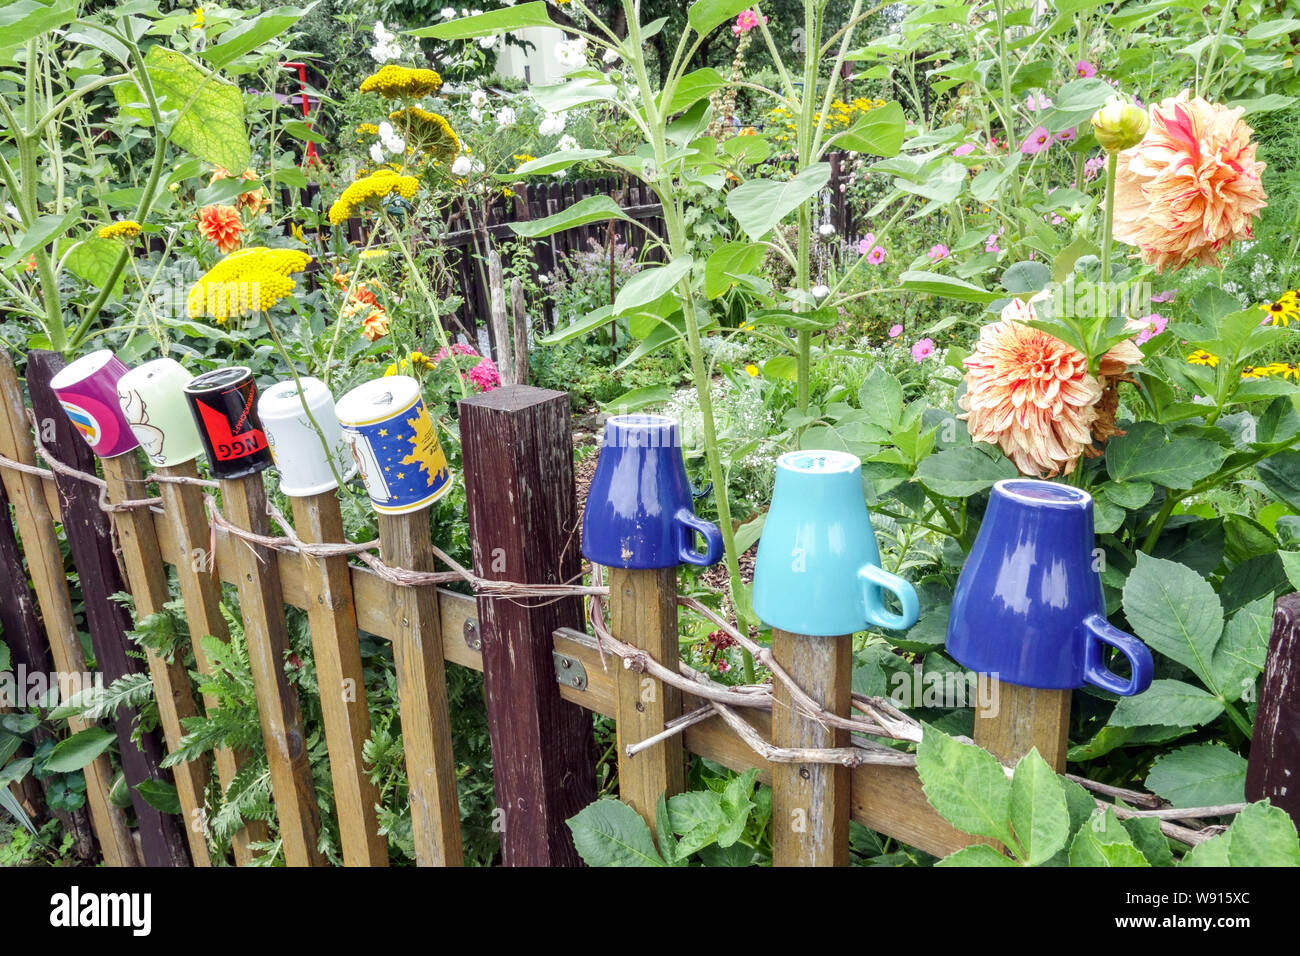 Wooden Garden Fence In The Overgrown Garden With Colorful Mugs On